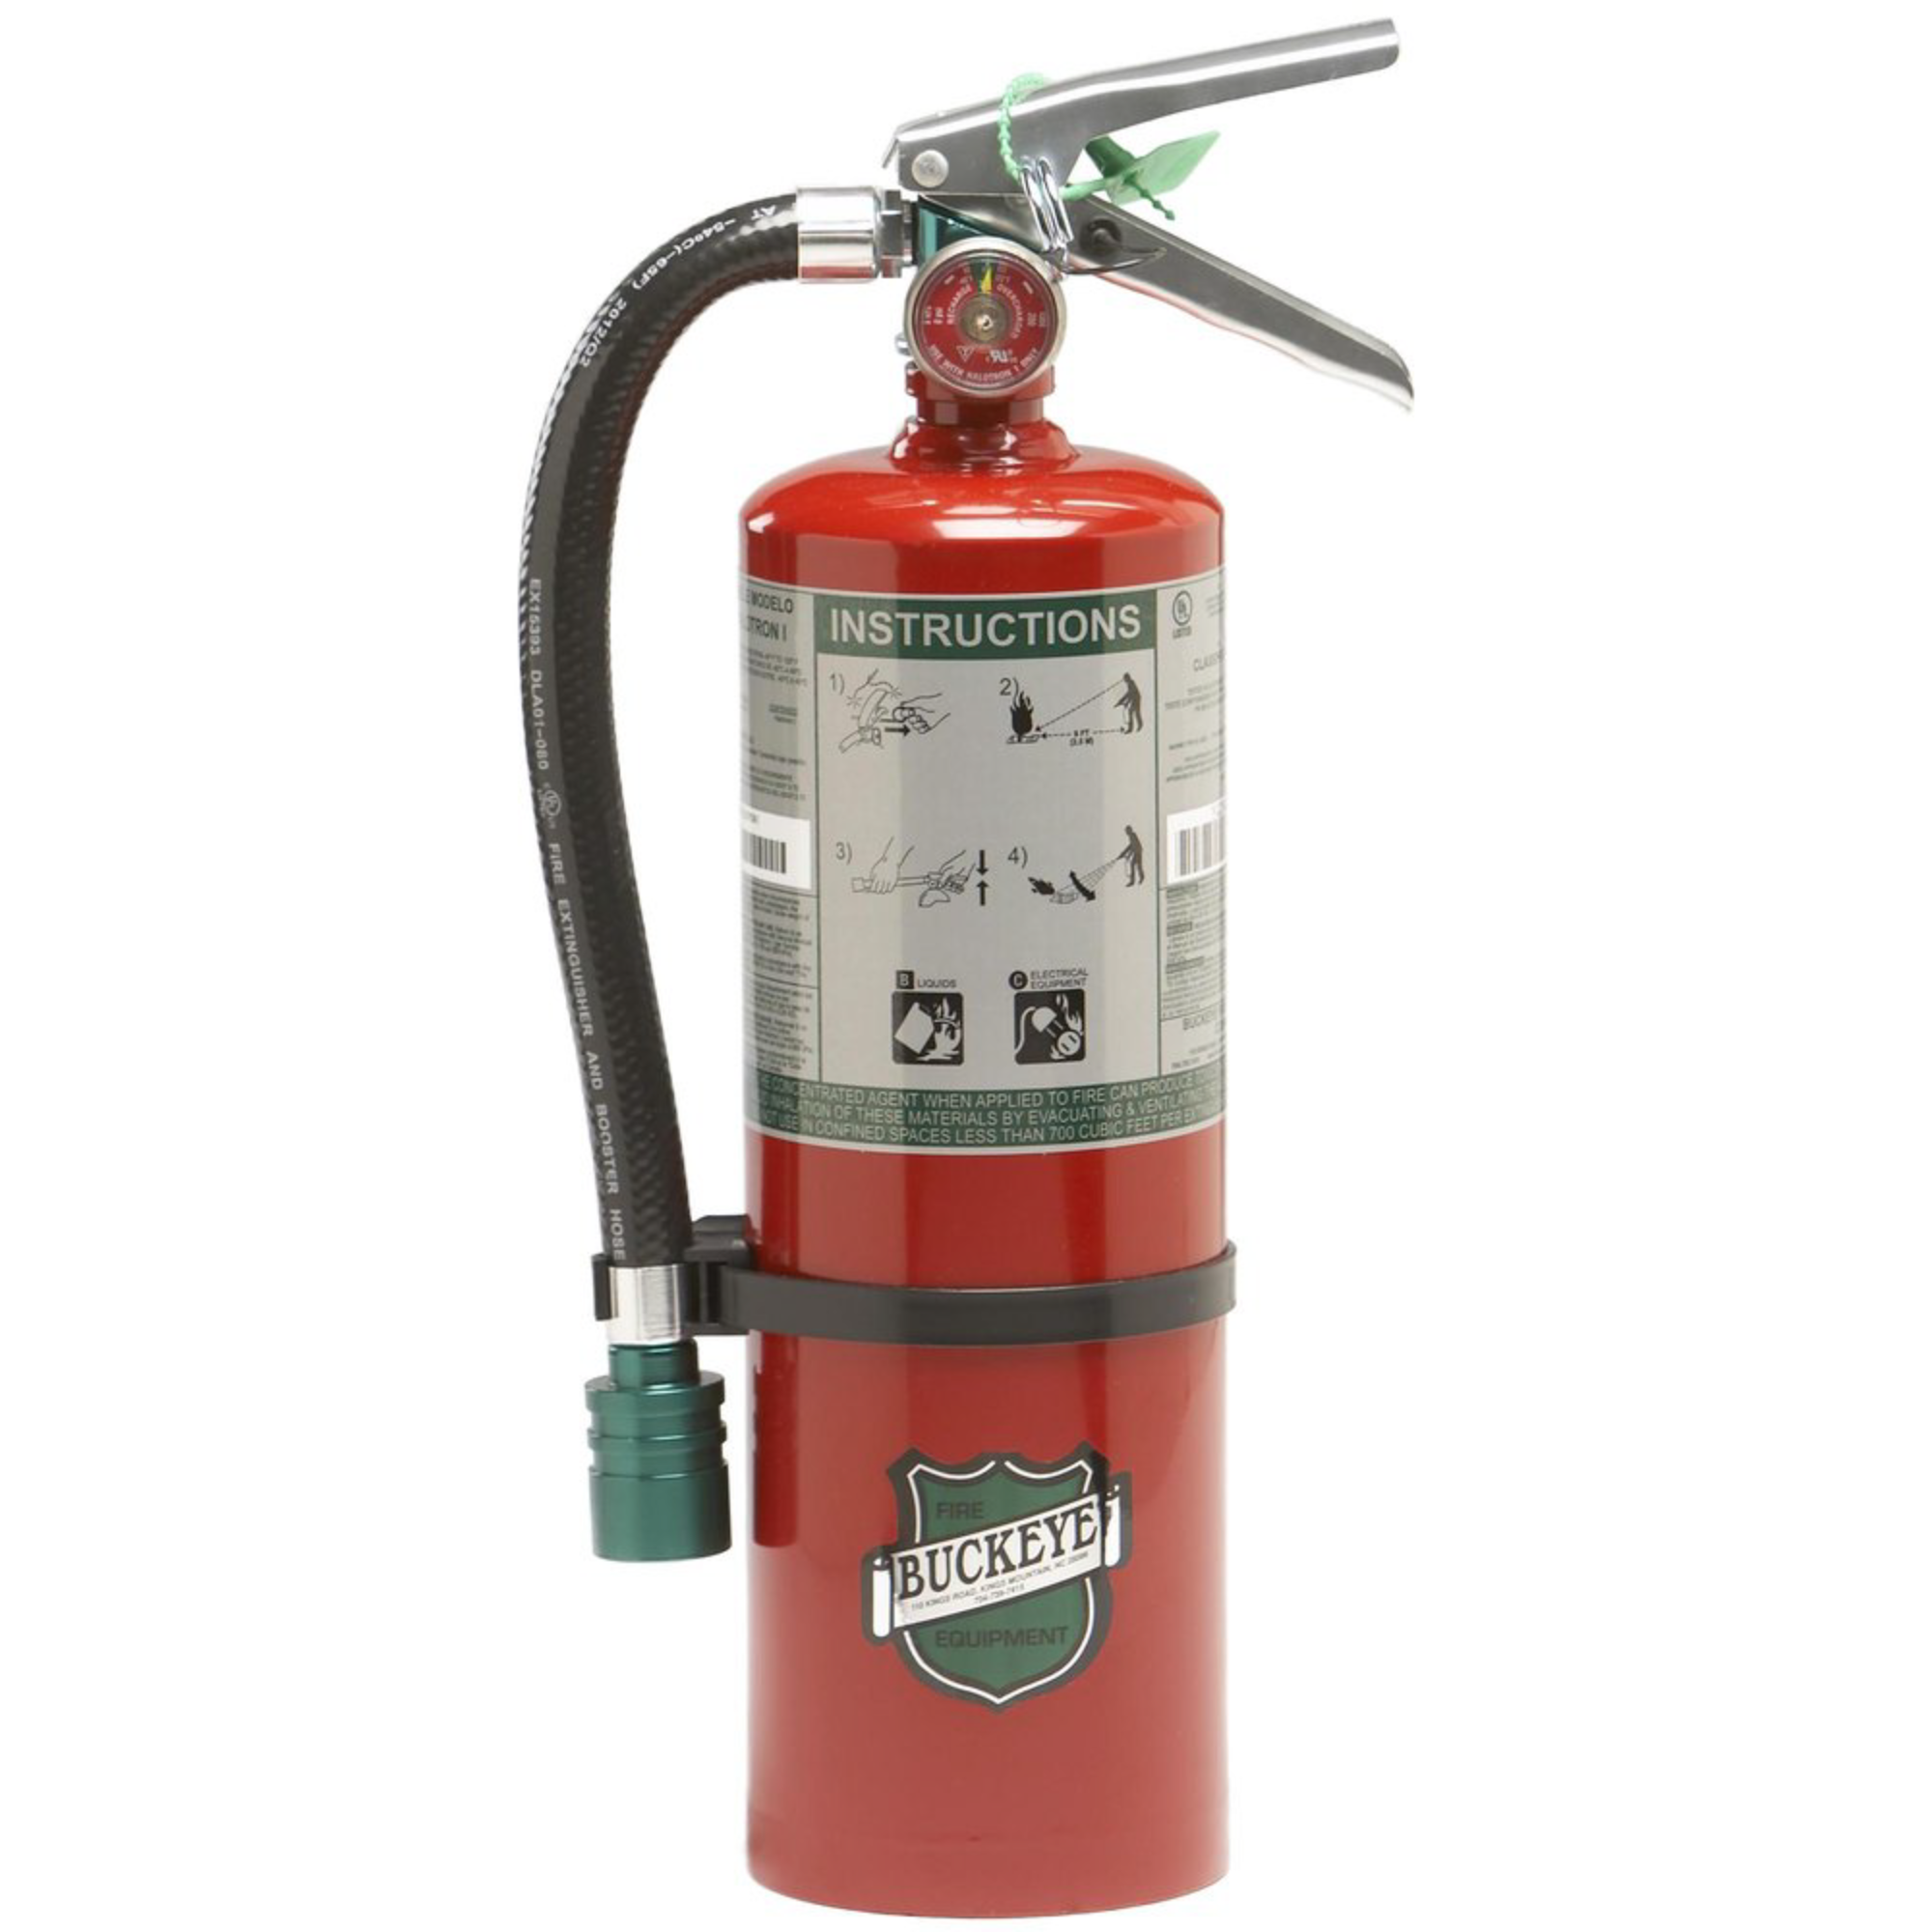 Buckeye, Fire Extinguisher, 5 lb Halotron Fire Extinguisher, Commercial, Industrial Grade Fire Extinguisher, Hose, Vehicle Bracket, 75555, Monthly Record Tag, Recommended for Server Rooms